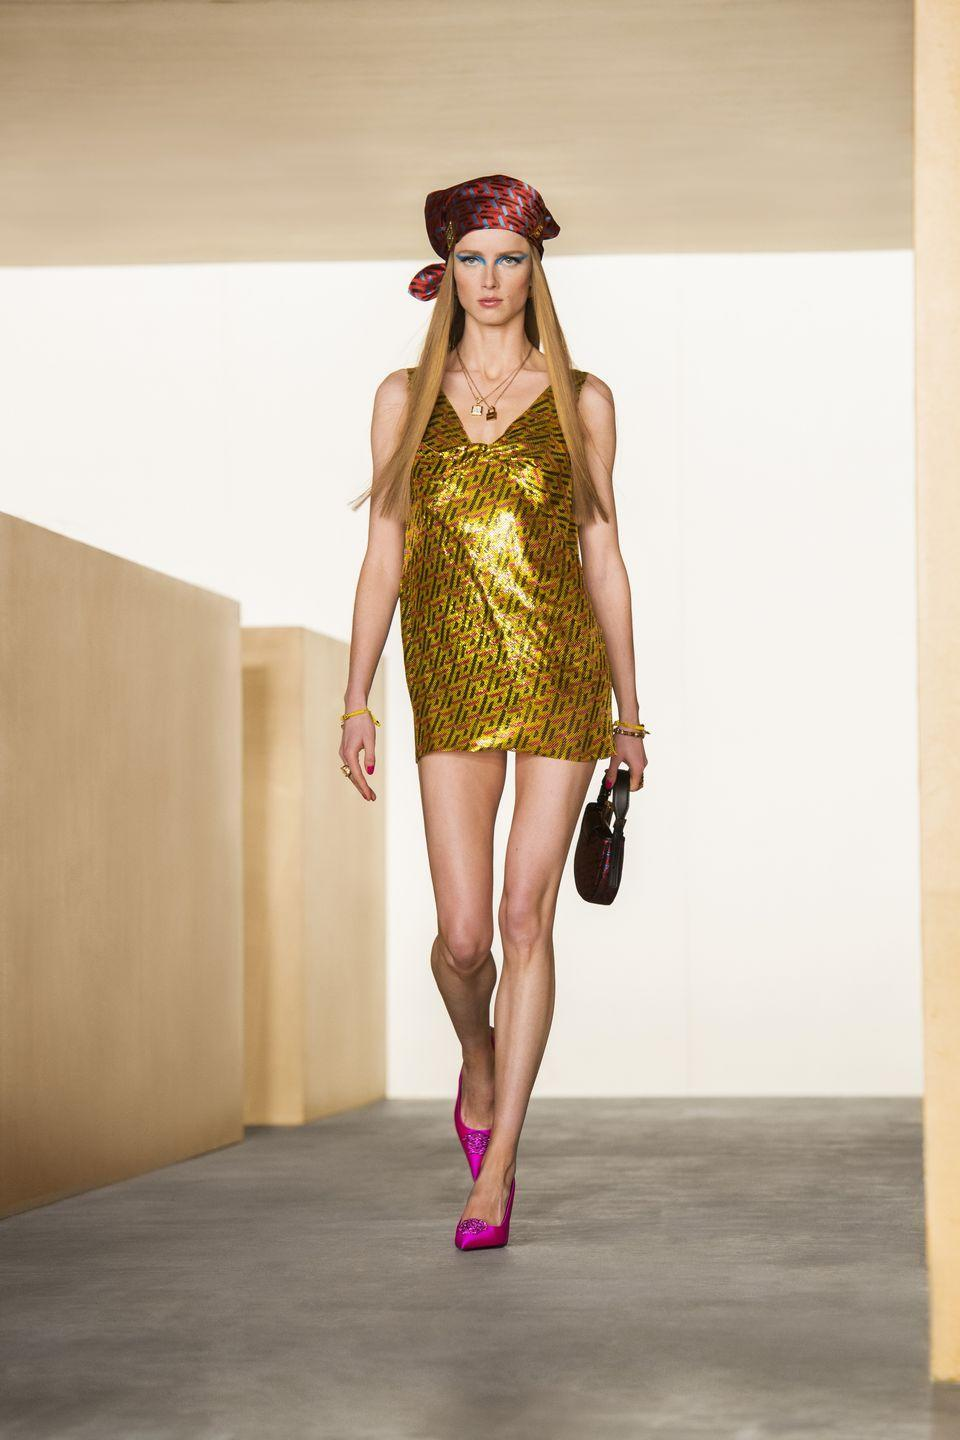 Photo credit: COURTESY VERSACE PRESS OFFICE